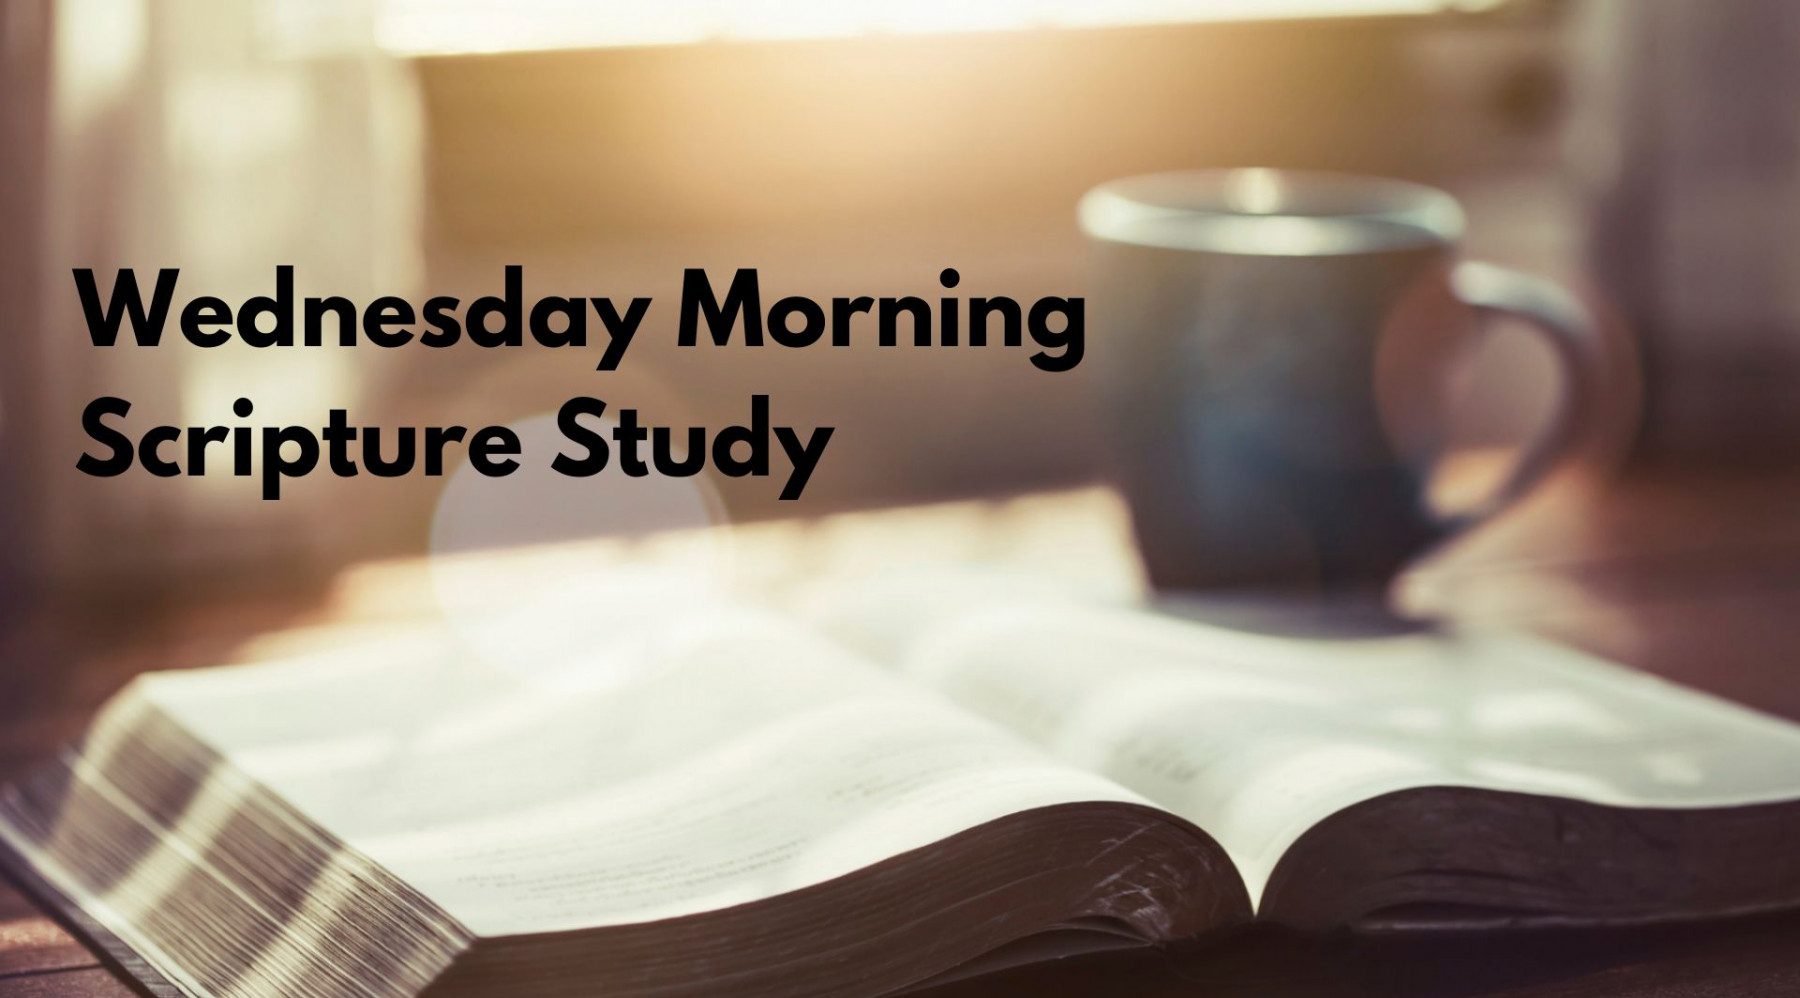 Wednesday Morning Scripture Study